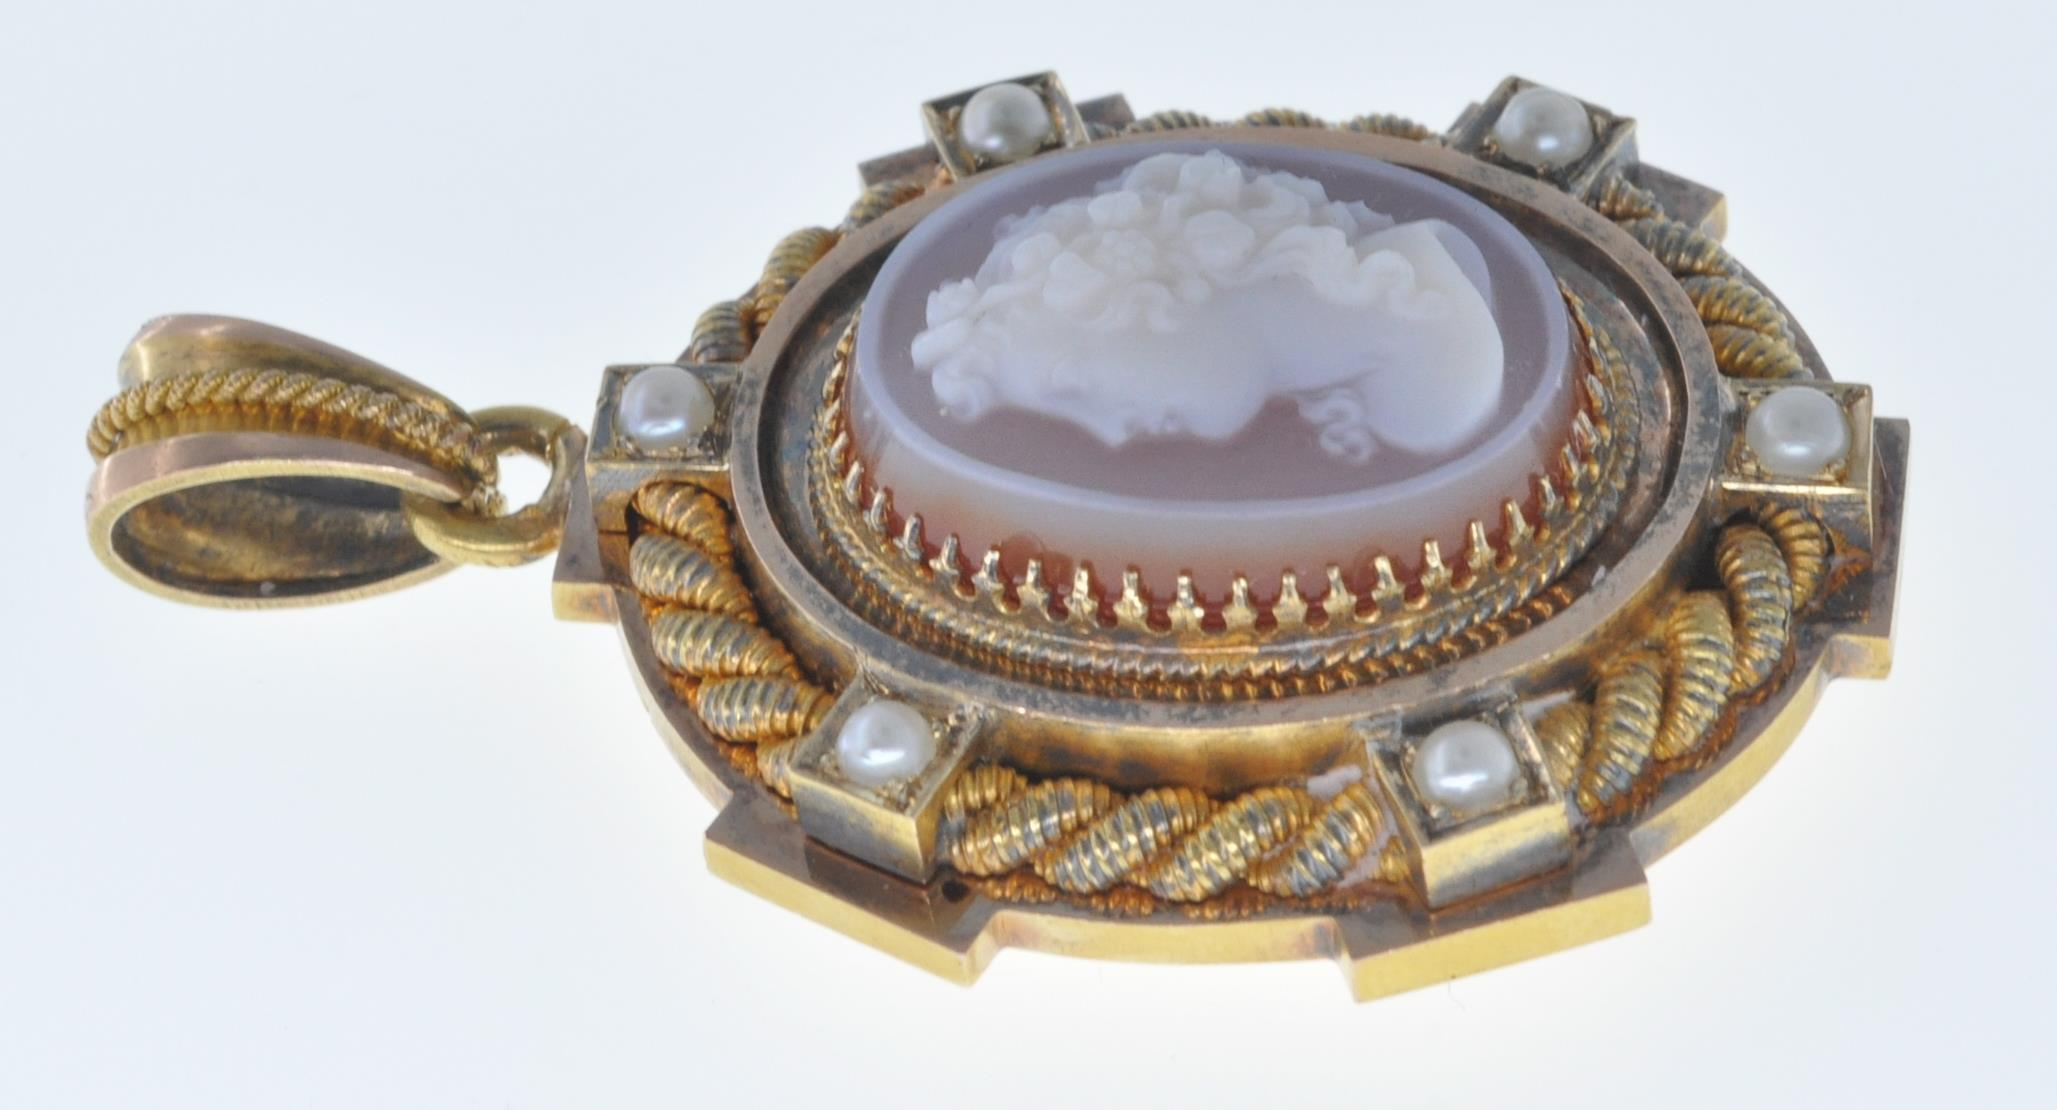 ANTIQUE SEED PEARL AND CAMEO LOCKET PENDANT - Image 5 of 8